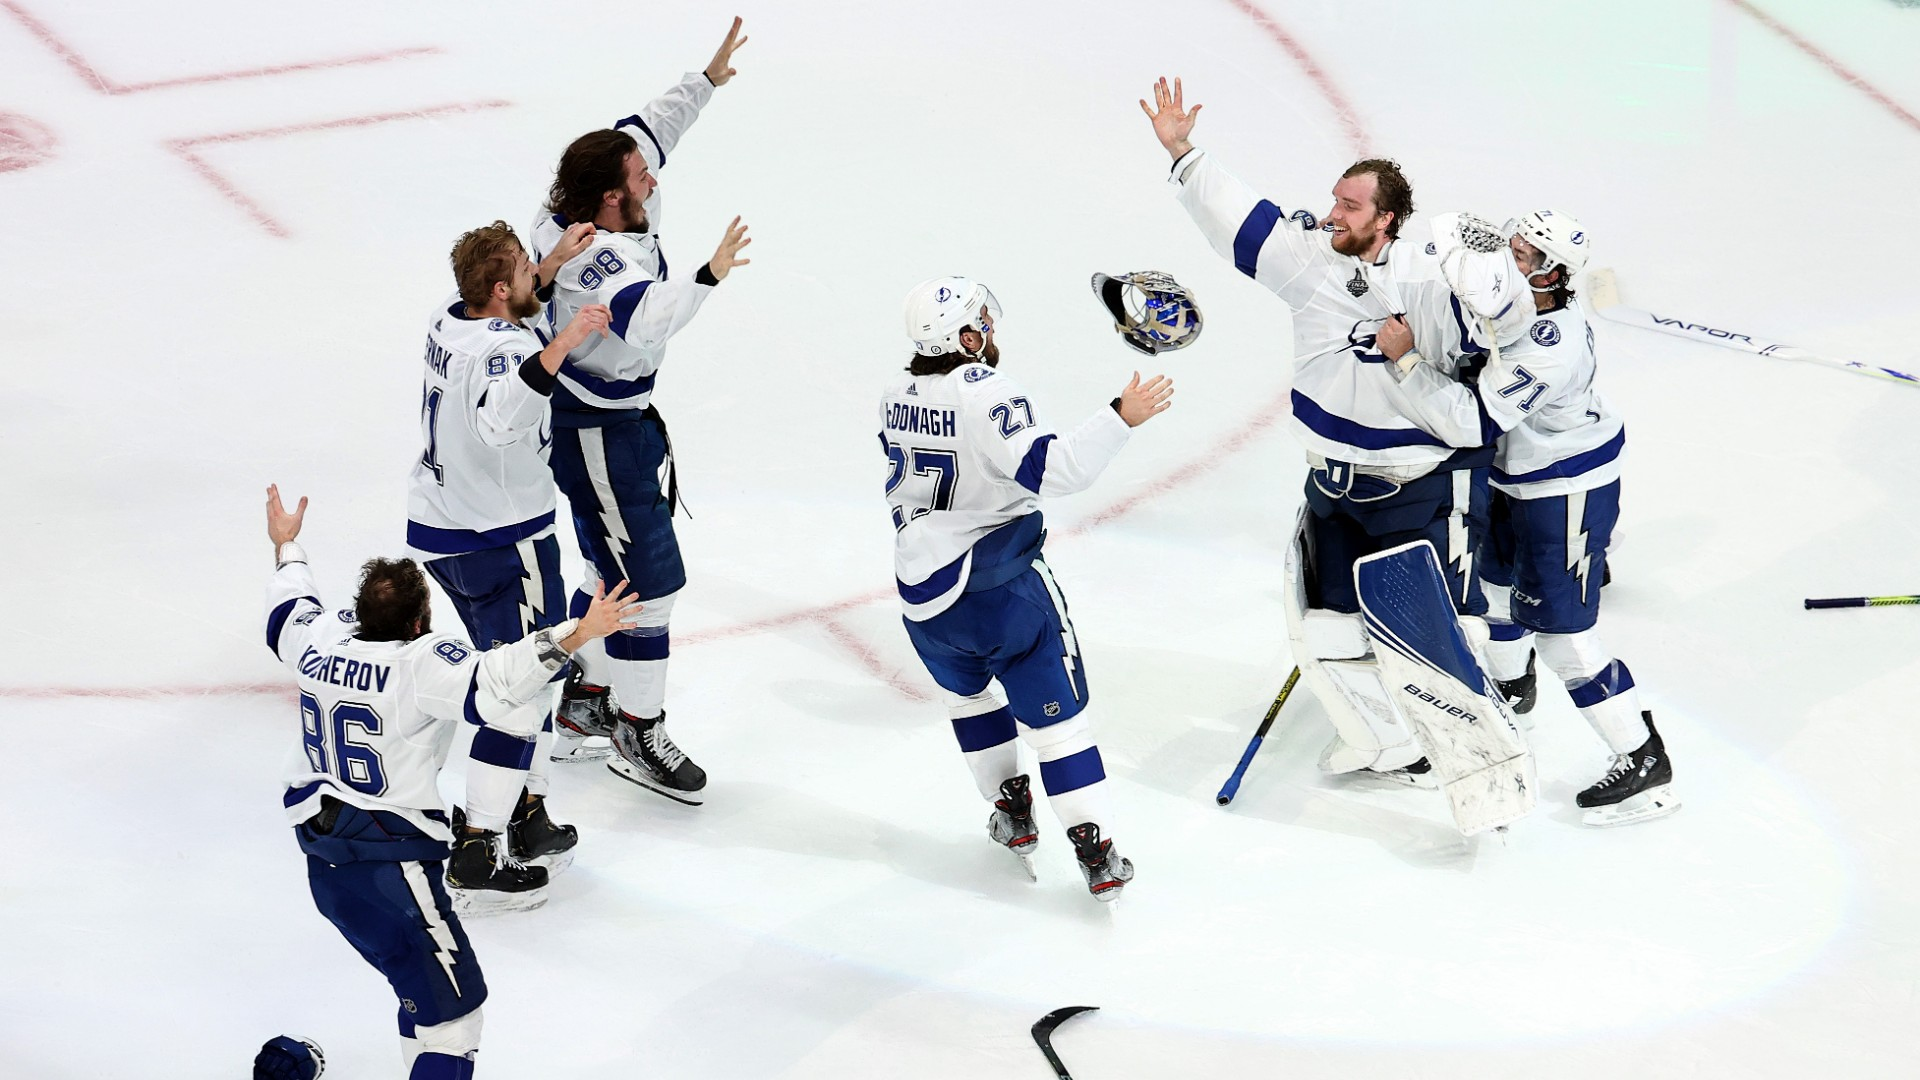 Lightning vs. Stars Game 6: Tampa Bay wins 2020 Stanley Cup